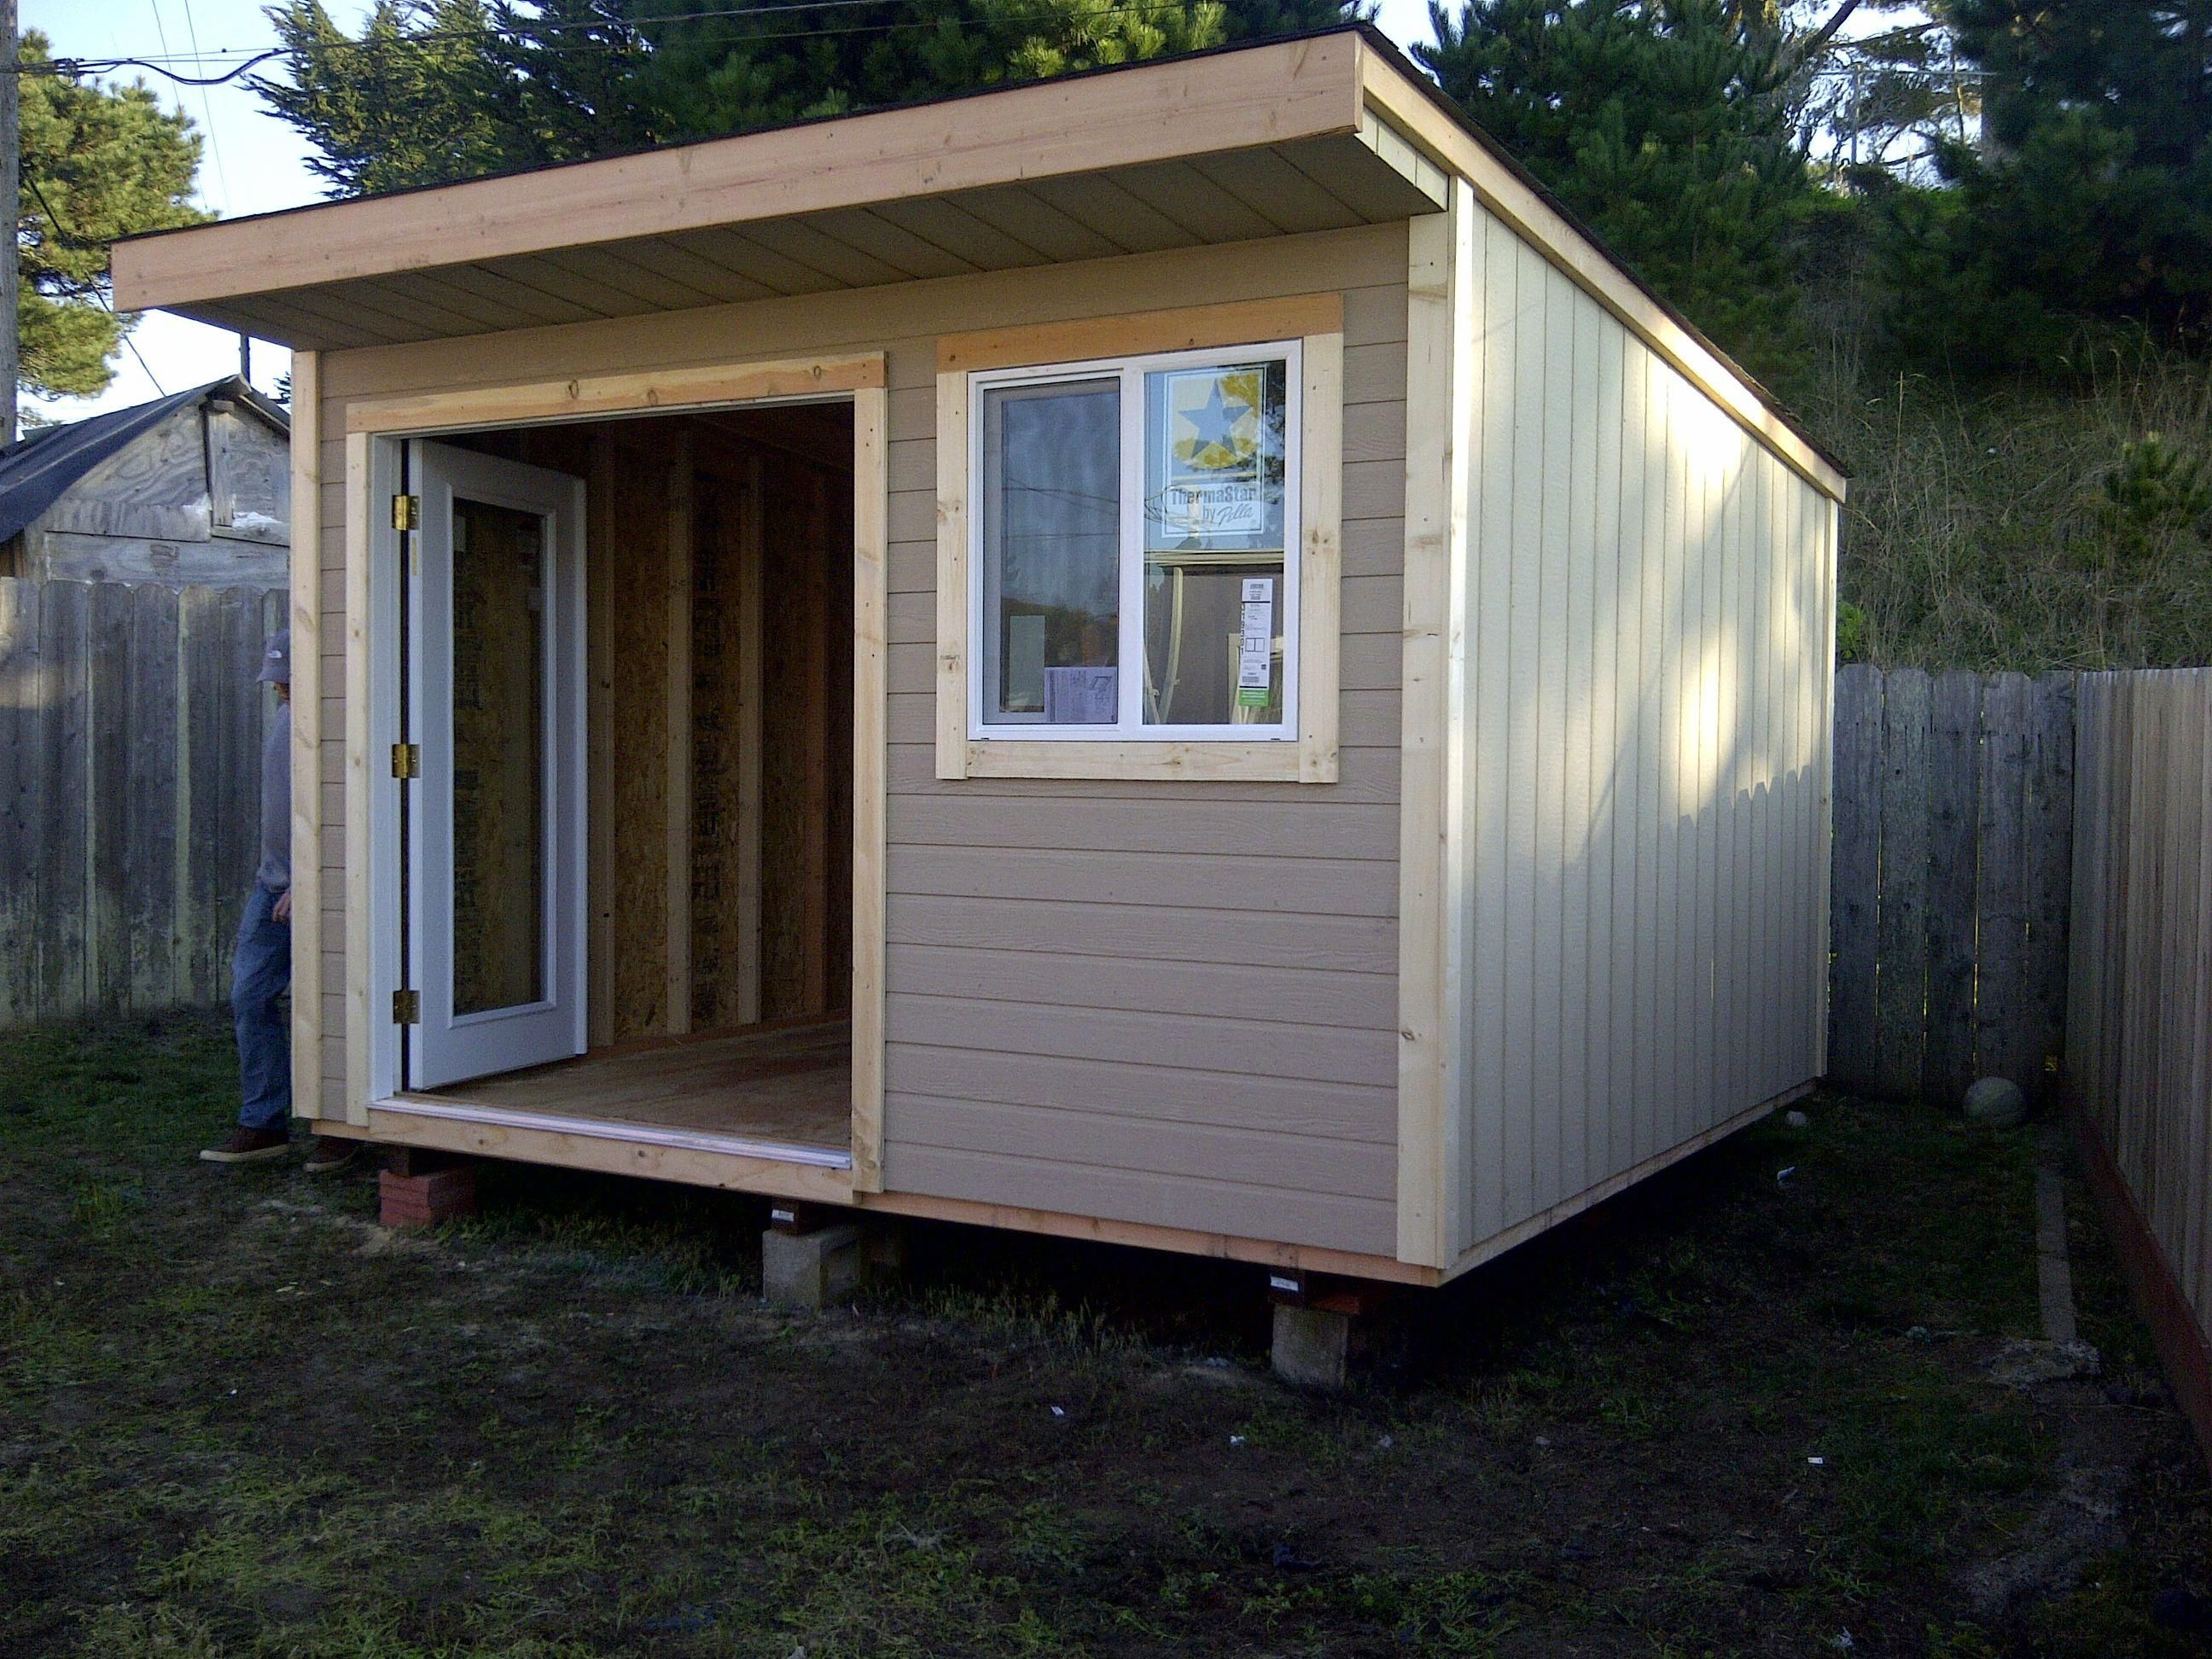 Image Result For Slanted Roof Sheds Ideasforsheds Shed Roof Design Building A Shed Backyard Sheds